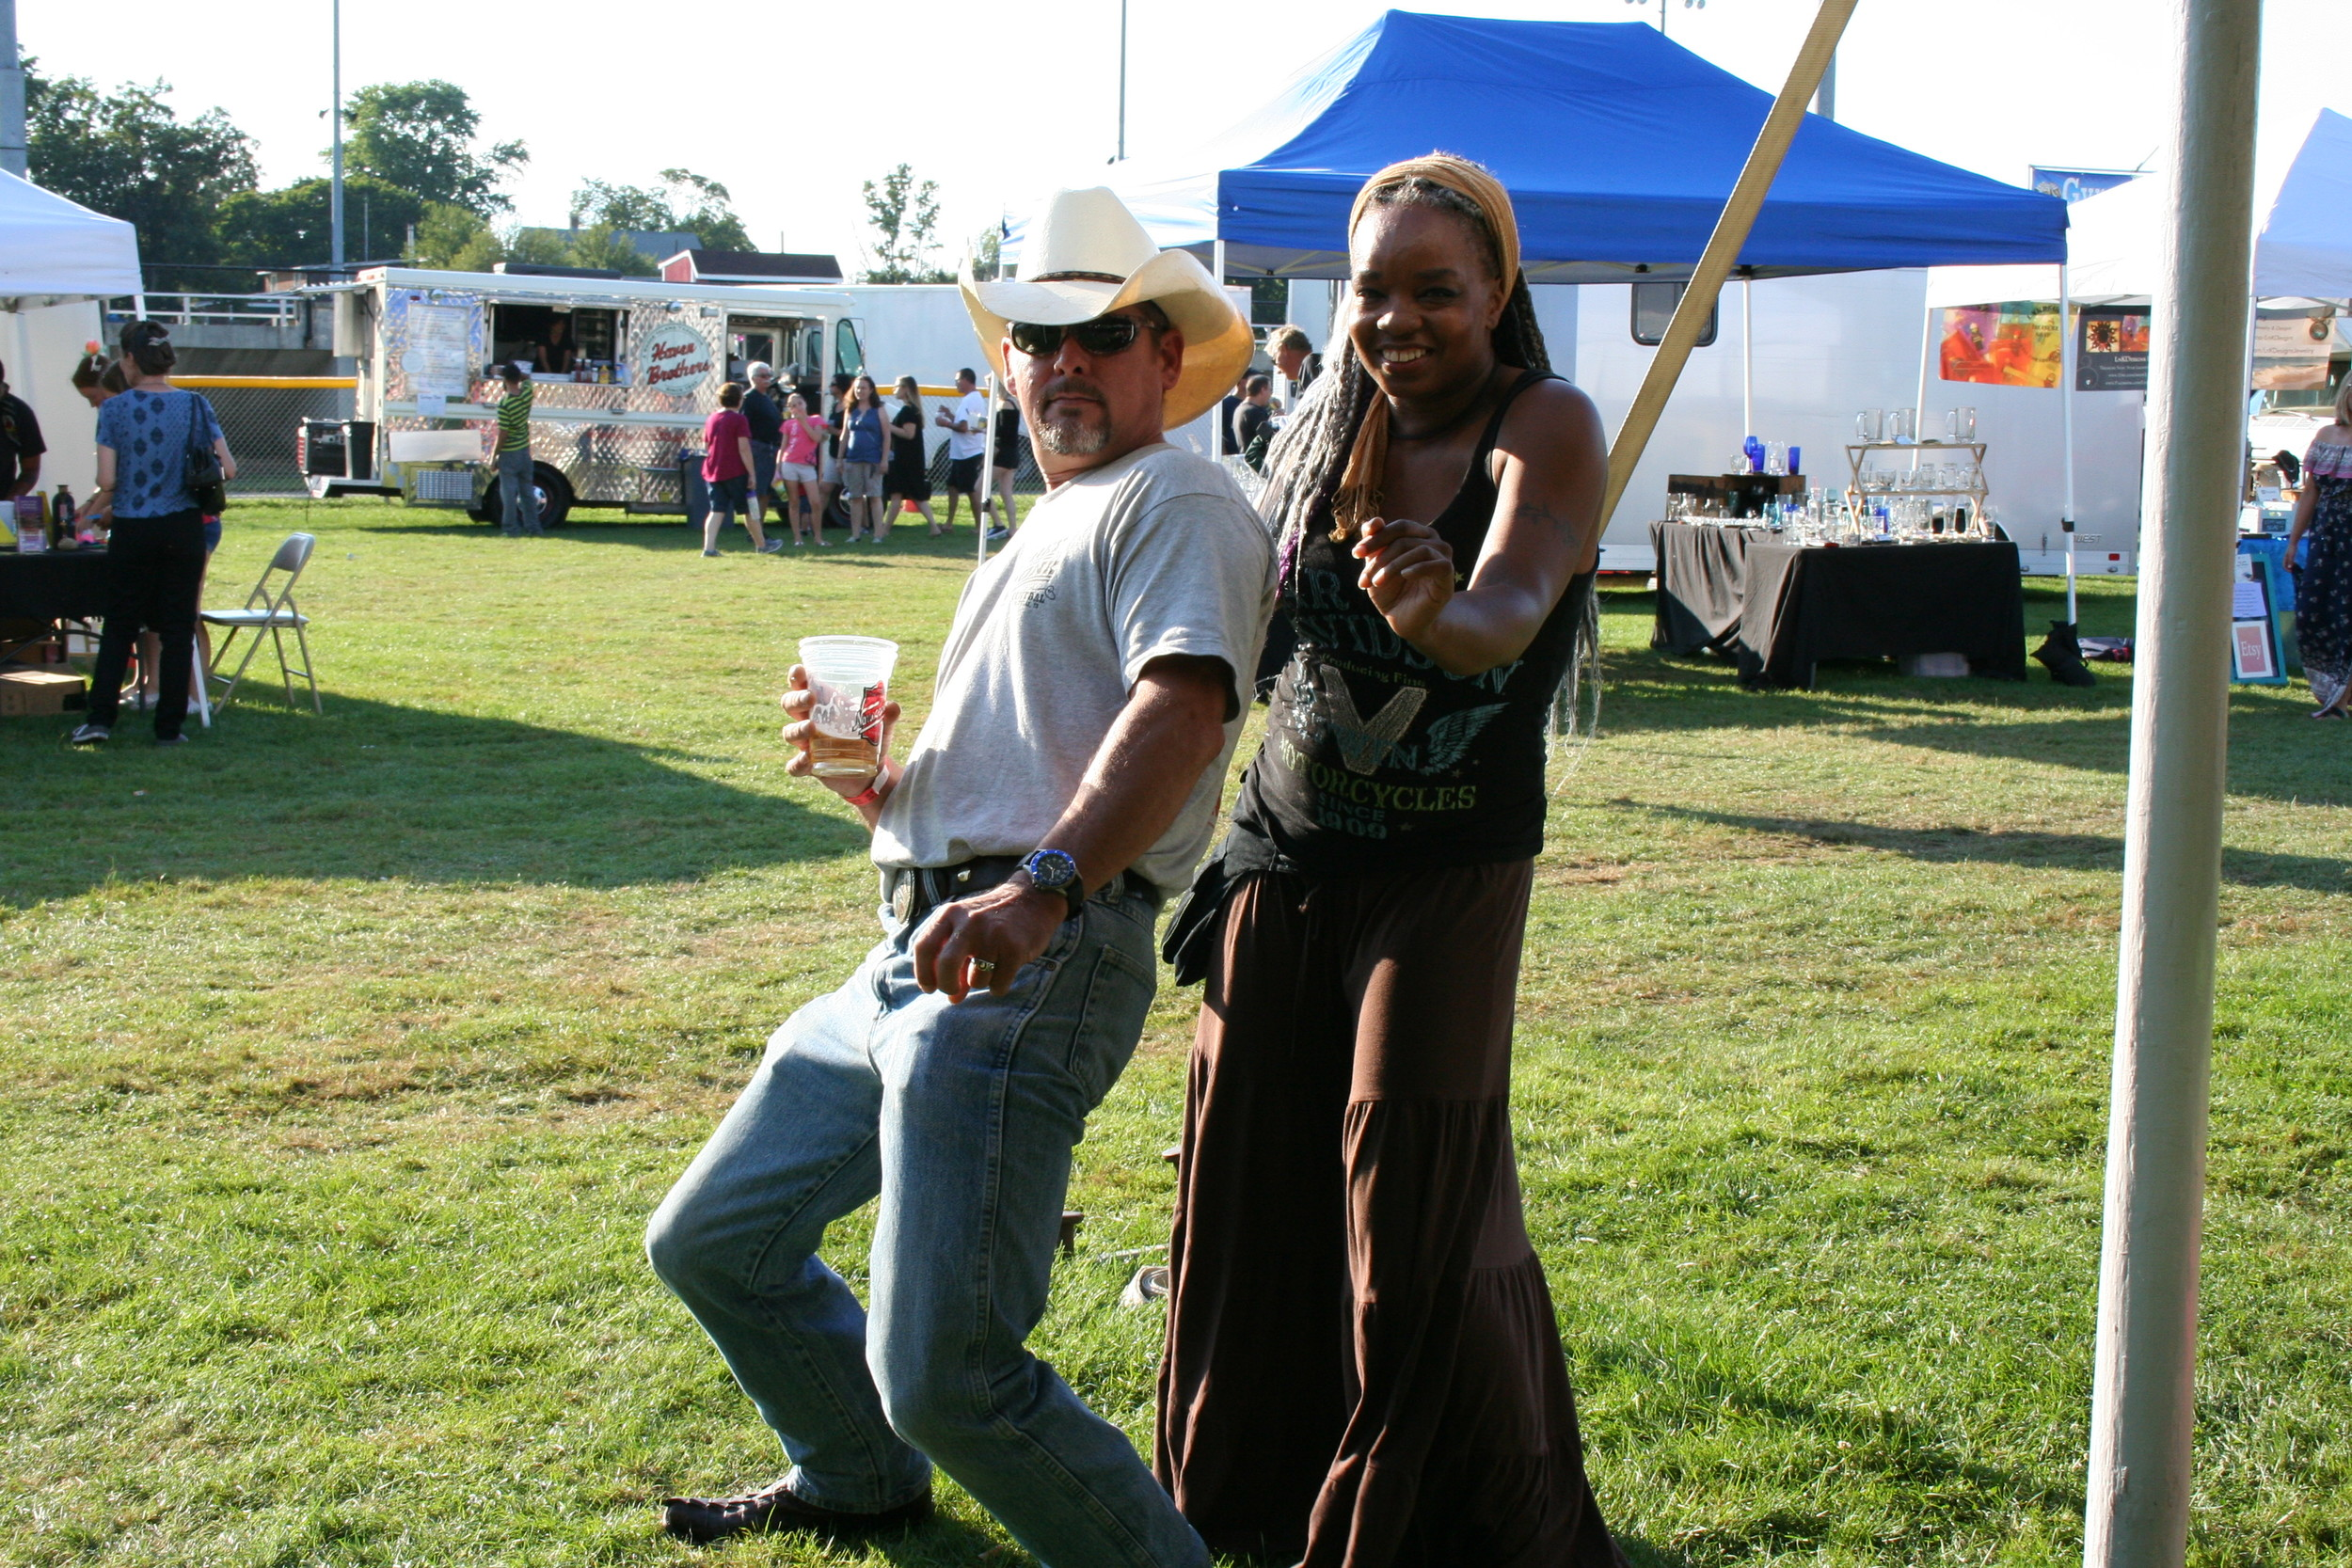 Justin Moan and Melanie Moore having some fun dancing with the music.